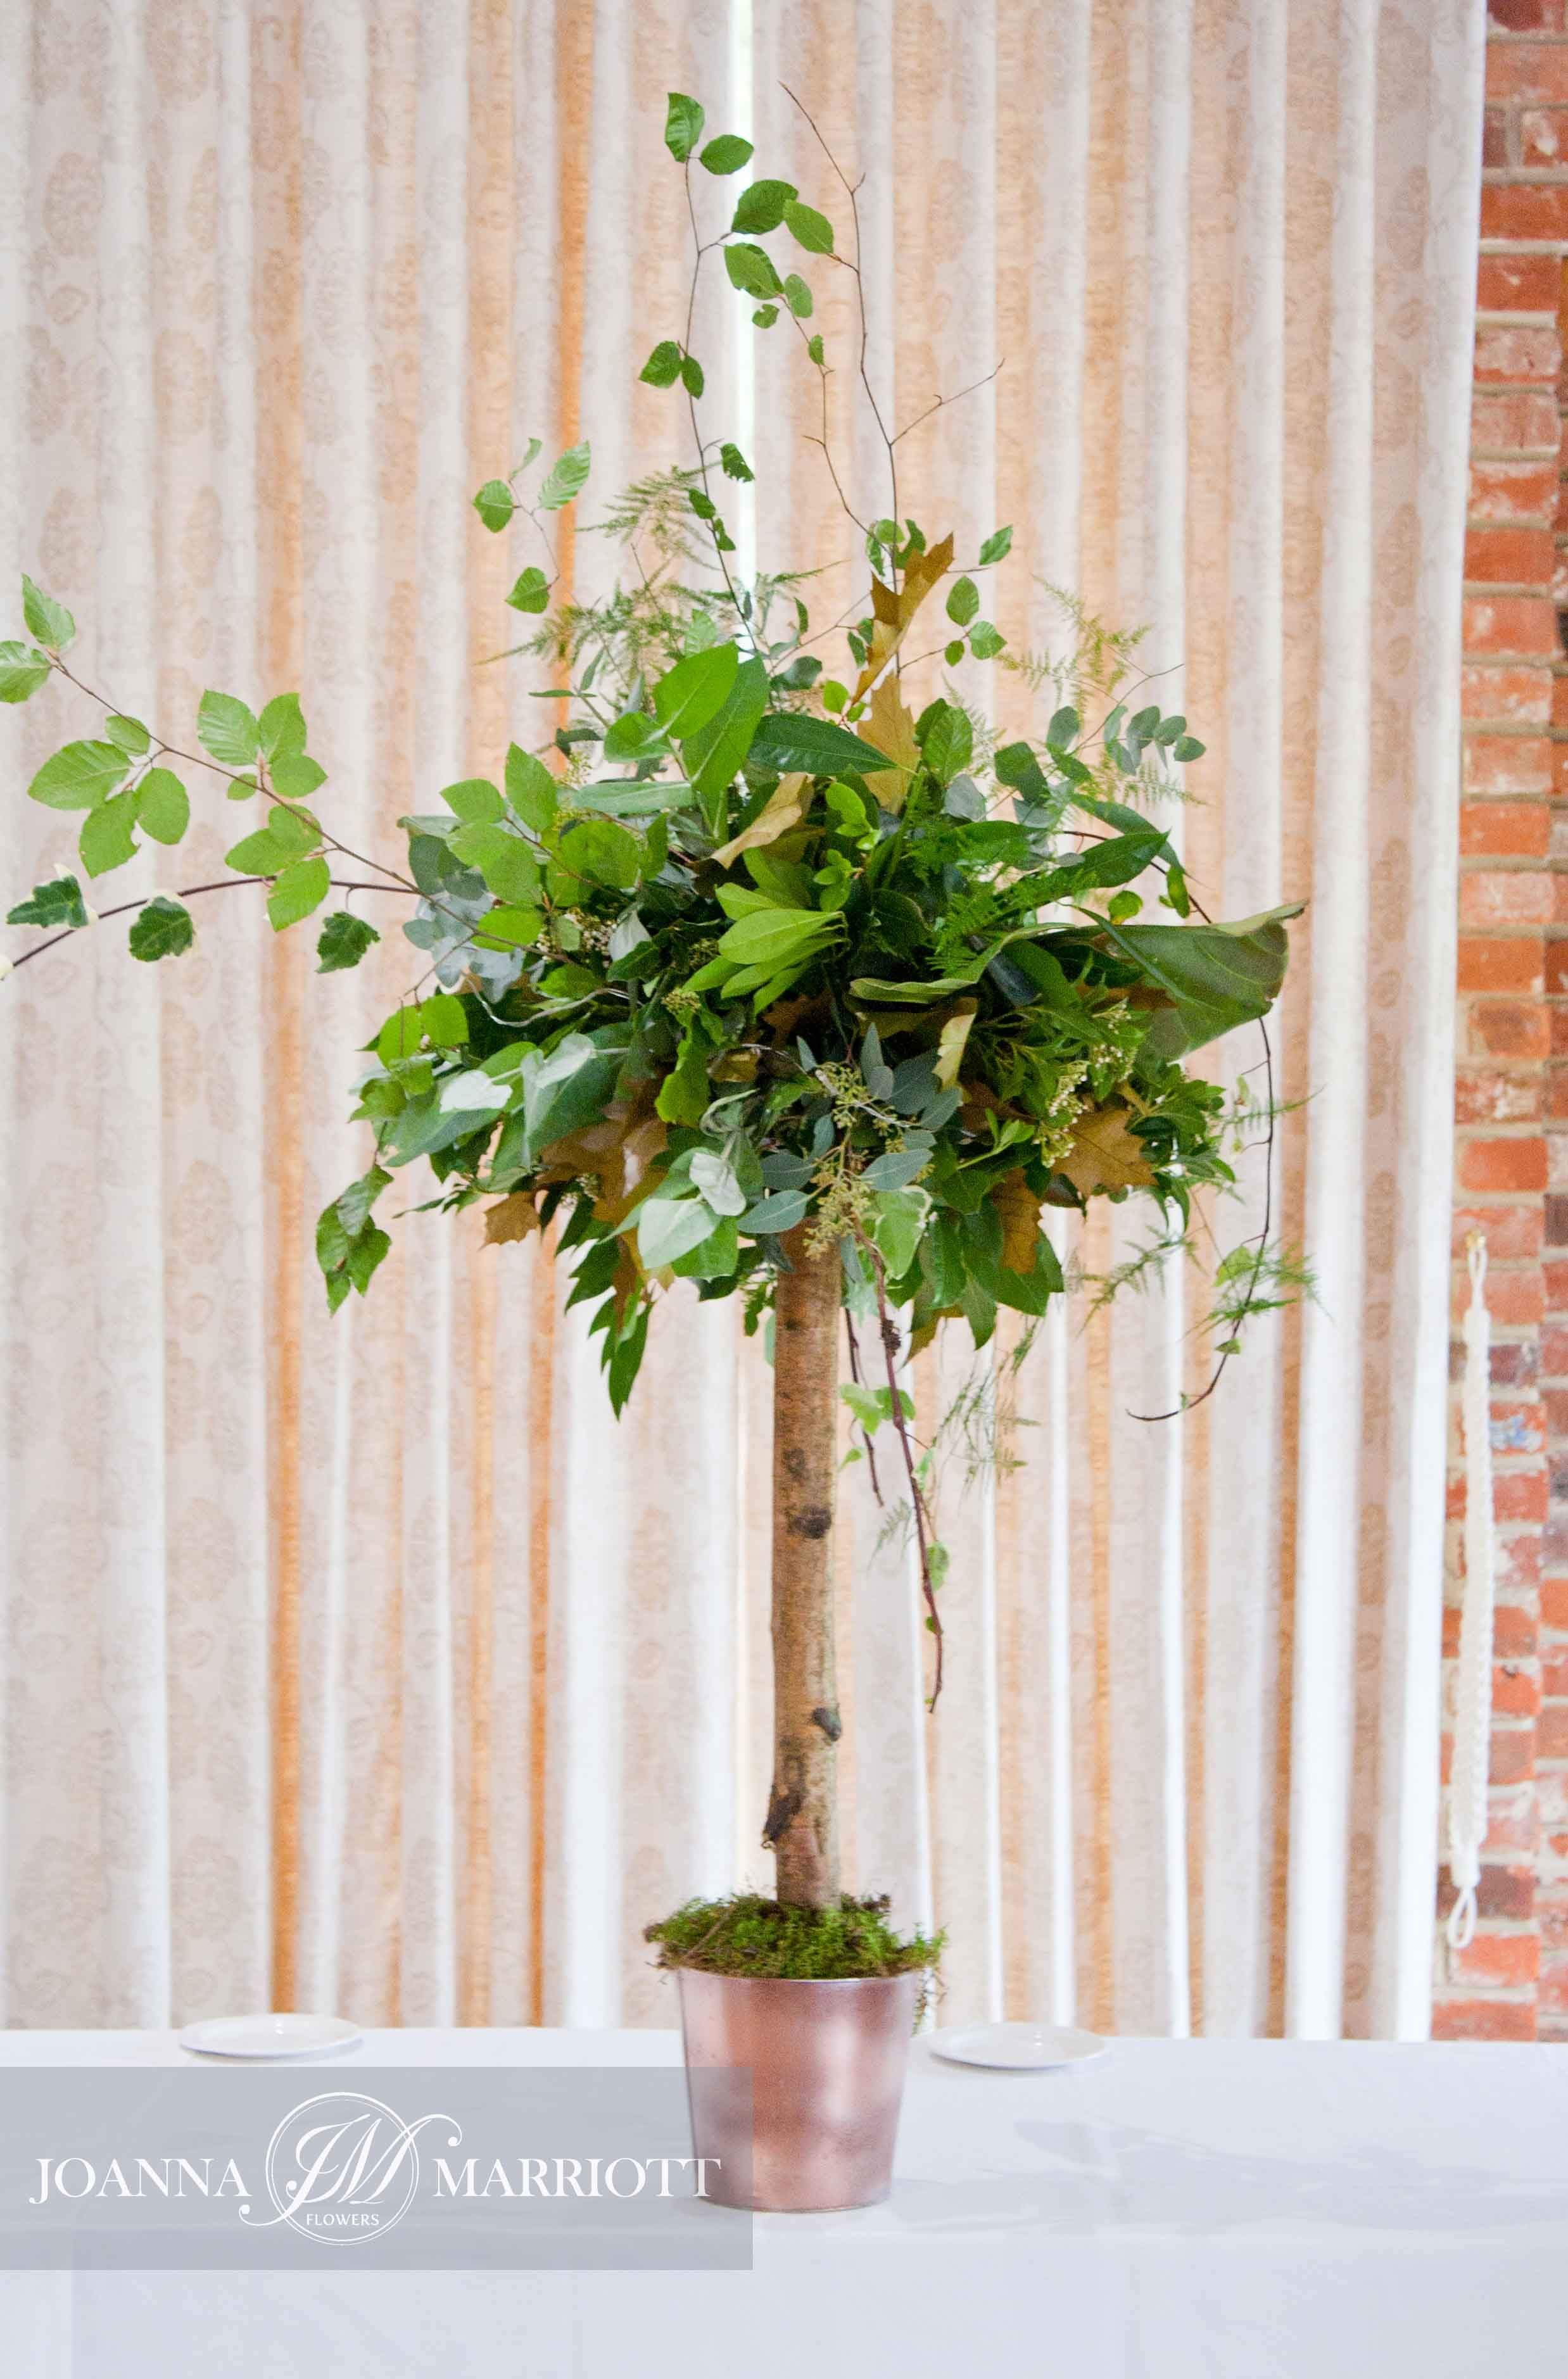 Woodland themed wedding. Topiatree composed of variety of foliage. Green wedding. rustic wedding, nature inspired, table arrangements.